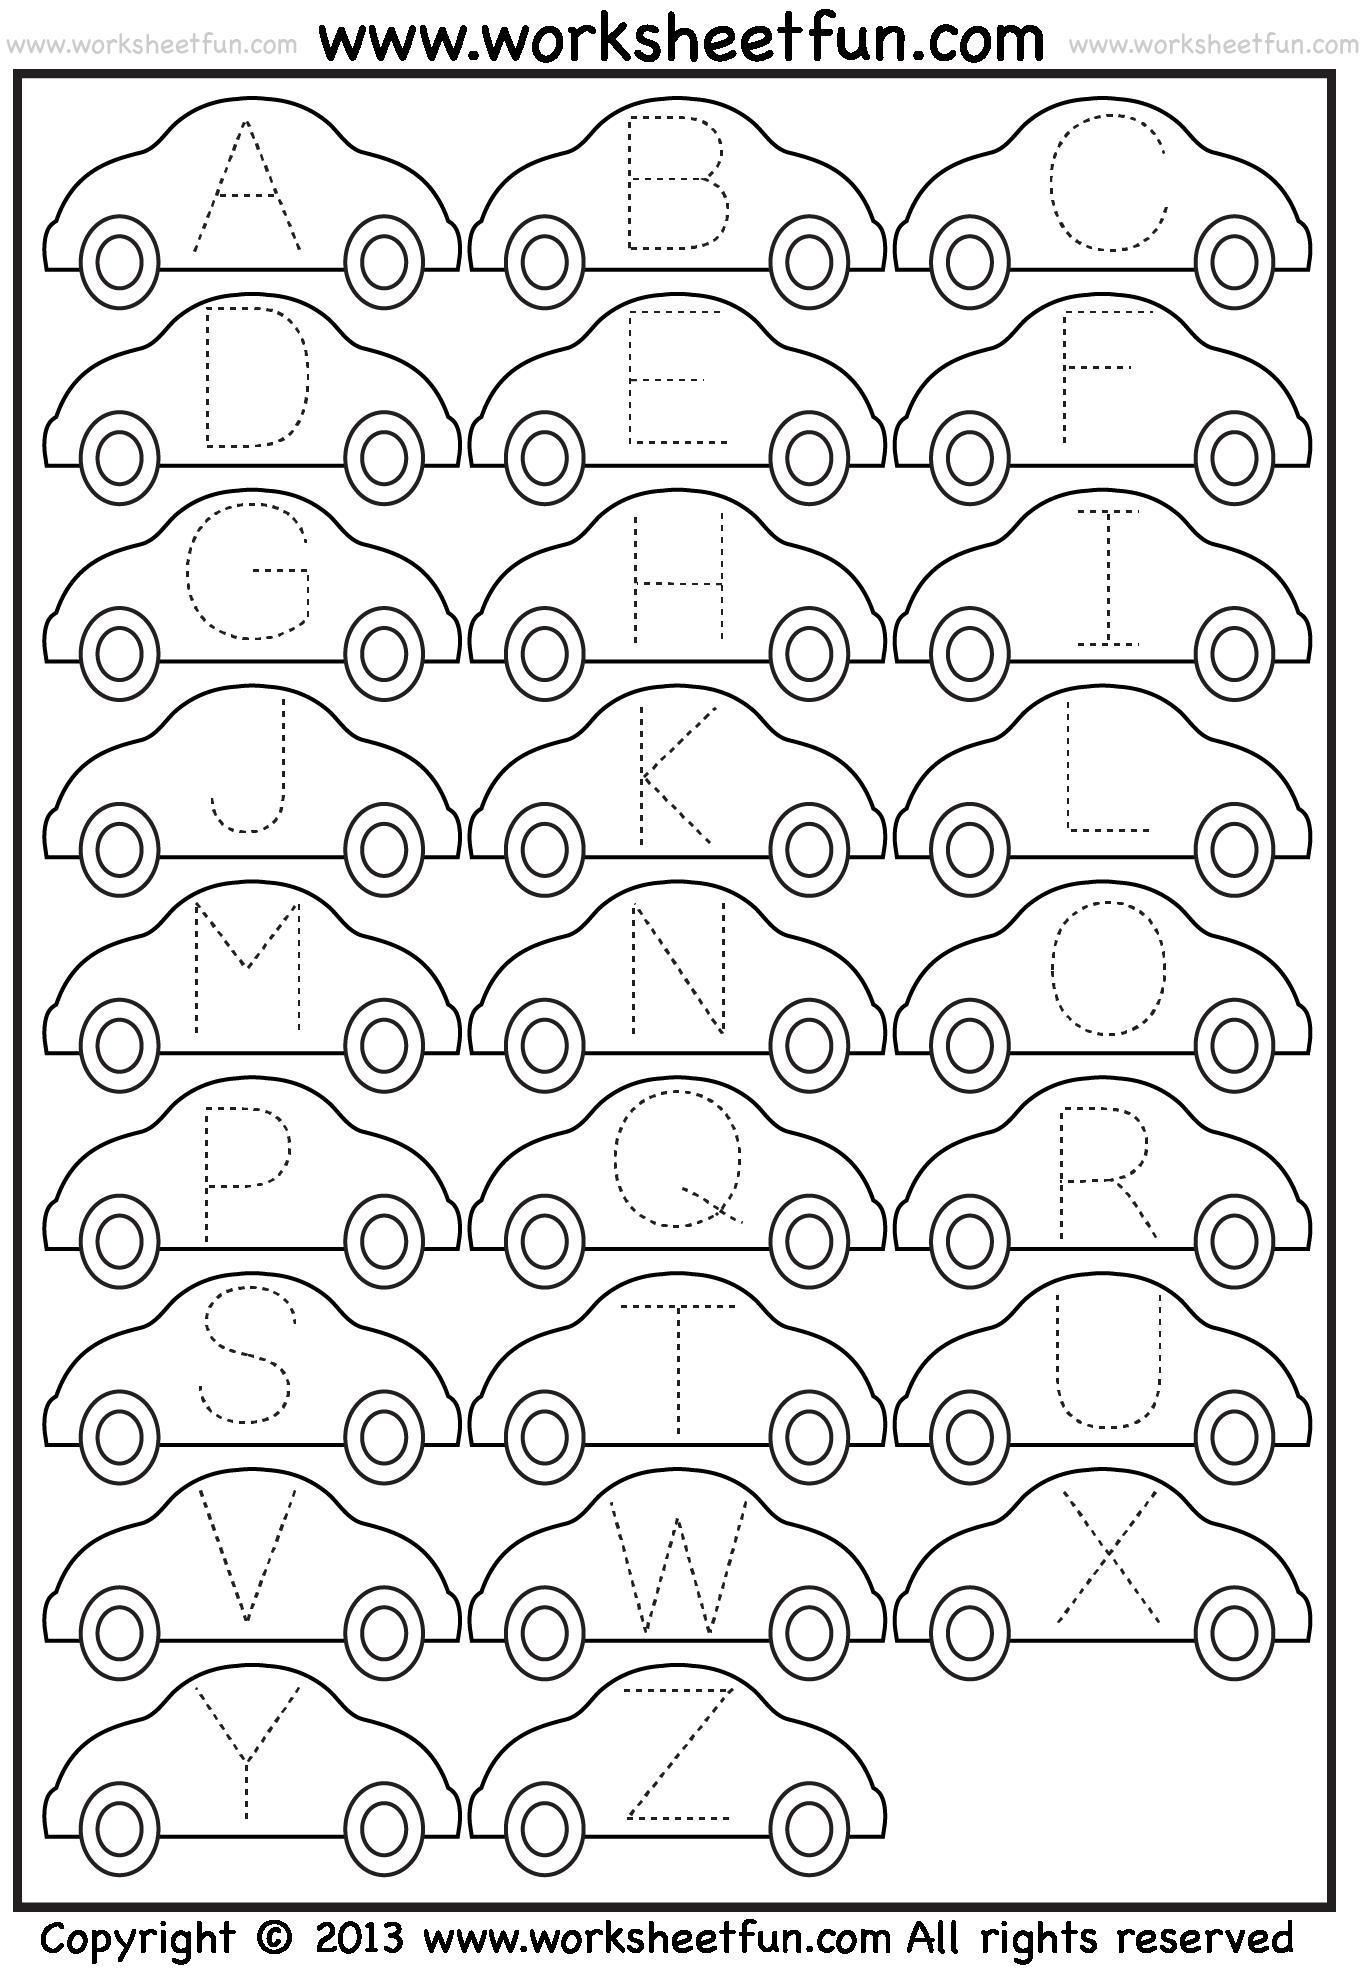 Awesome Printable Letter Tracing Pages That You Must Know